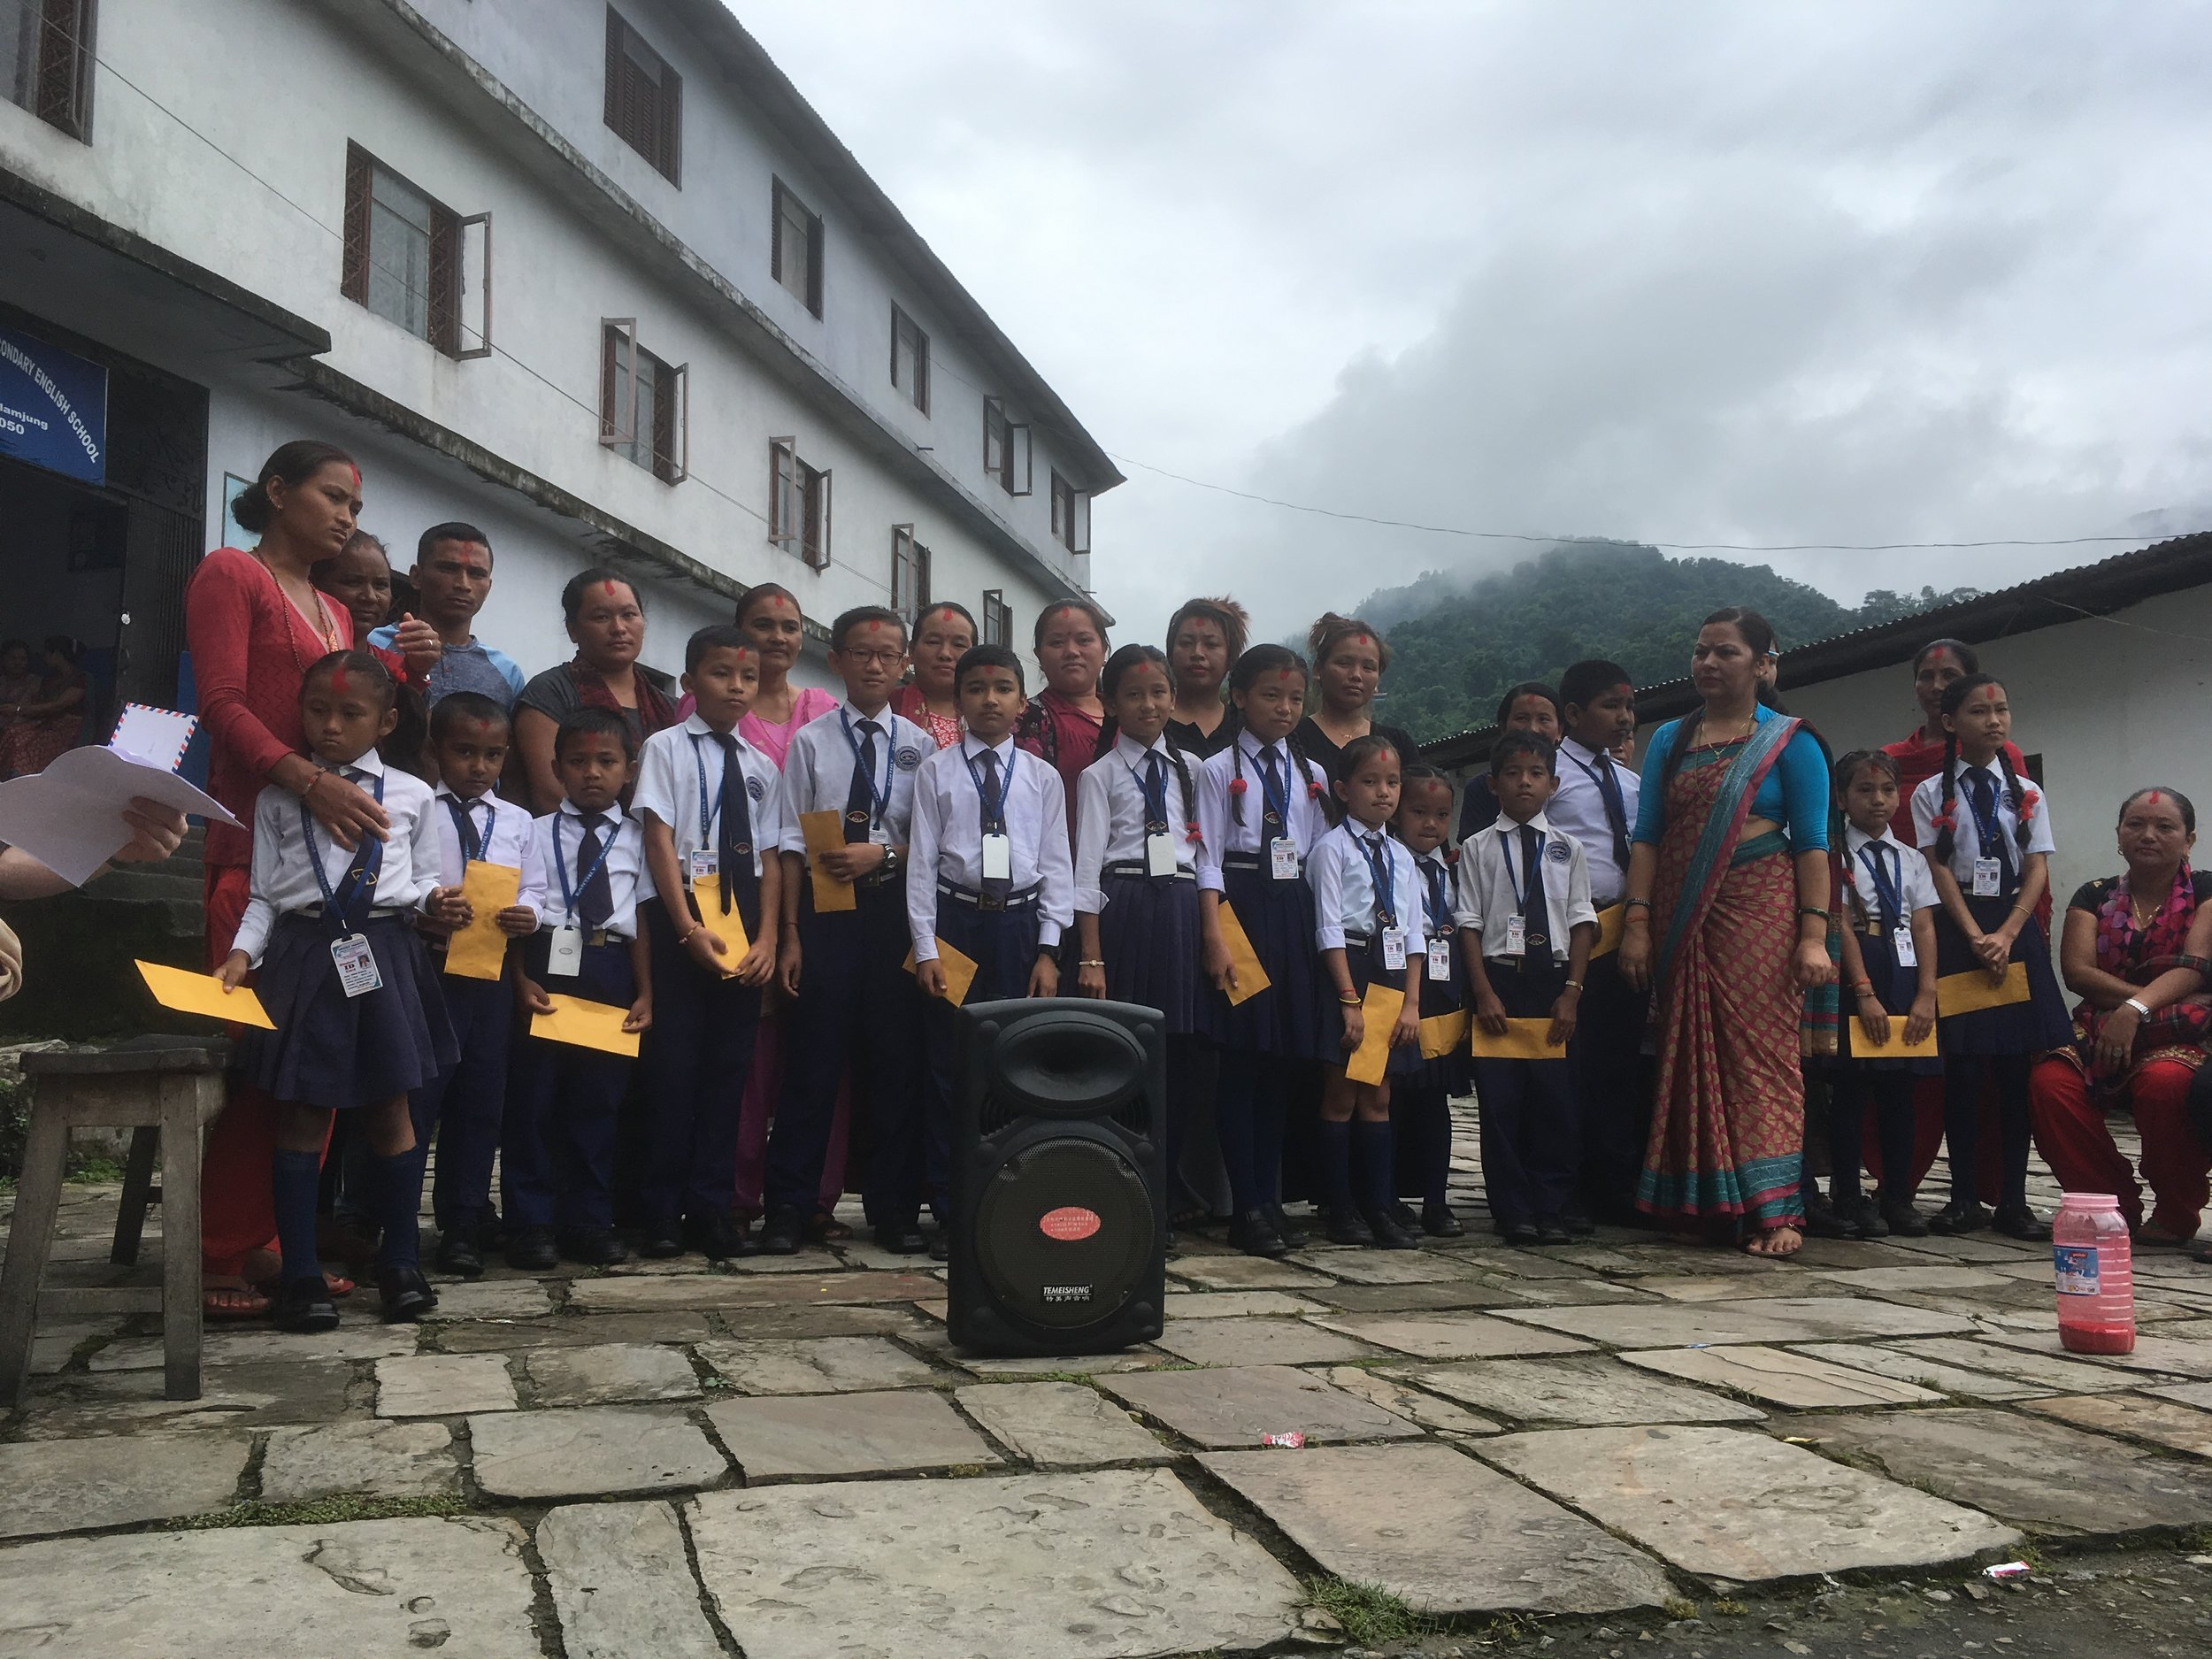 The 15 students with their scholarship envolopes